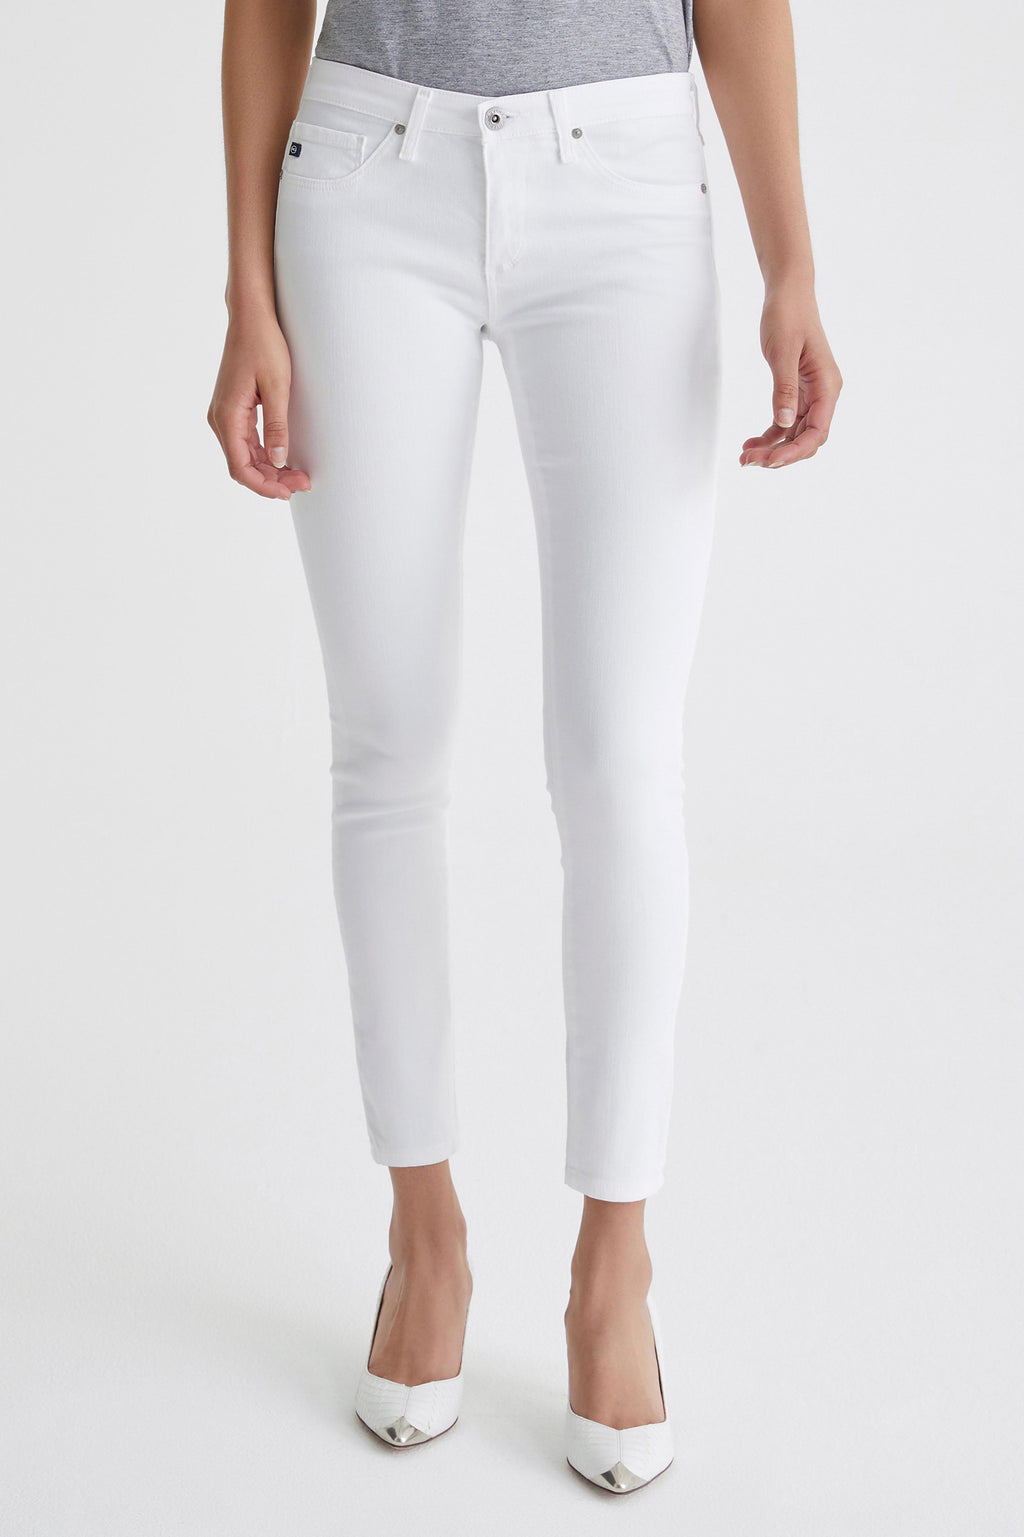 Buy Legging Ankle Pants from AG Jeans at paya boutique